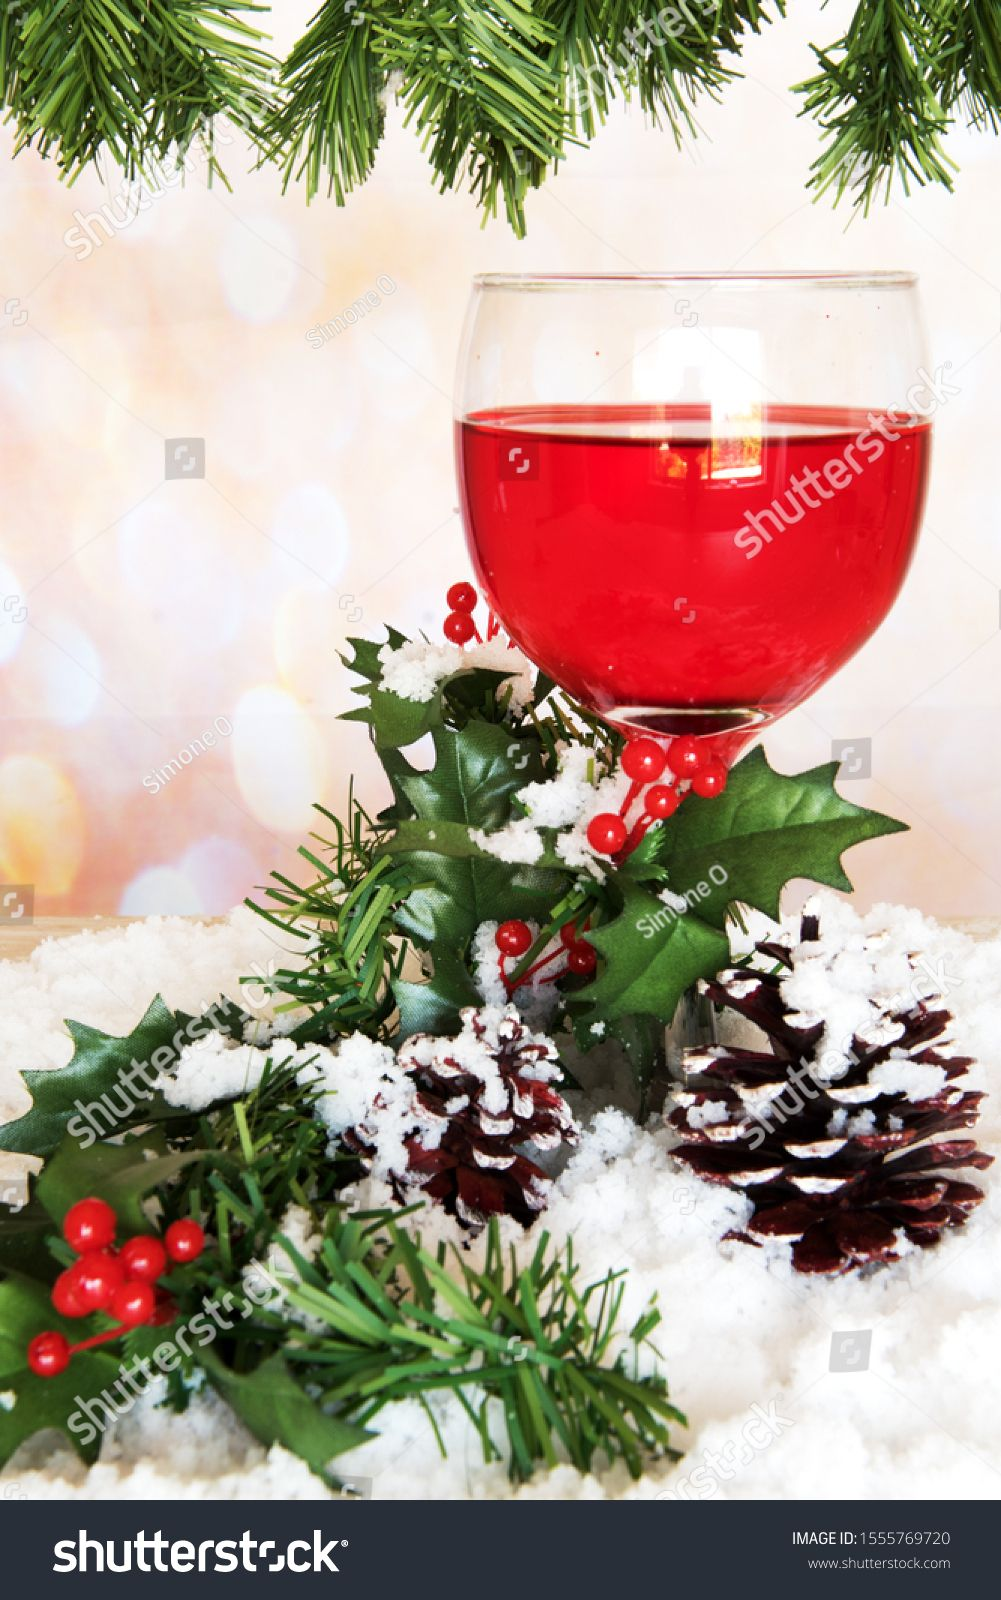 Port Wine Glass With Pine Cone And Mistletoe On Festive Background Holiday And Christmas Theme Ad Ad Pine Cone Glass Port Port Wine Wine Glass Glass